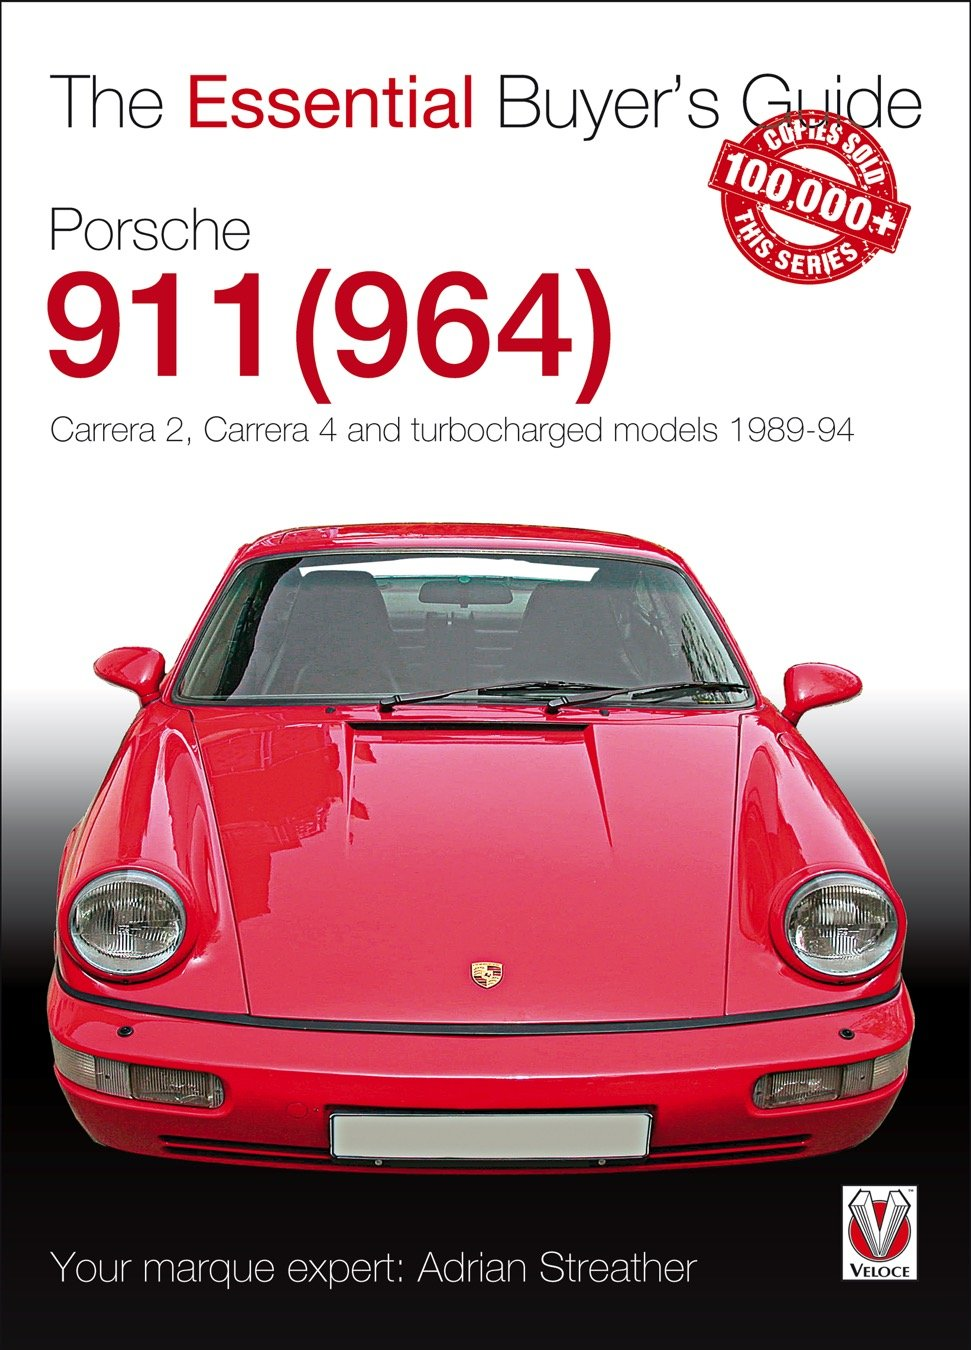 Porsche 911 964 : Carrera 2, Carrera 4 and turbocharged models. Model years 1989 to 1994 Essential Buyers Guide series: Amazon.es: Adrian Streather: Libros ...